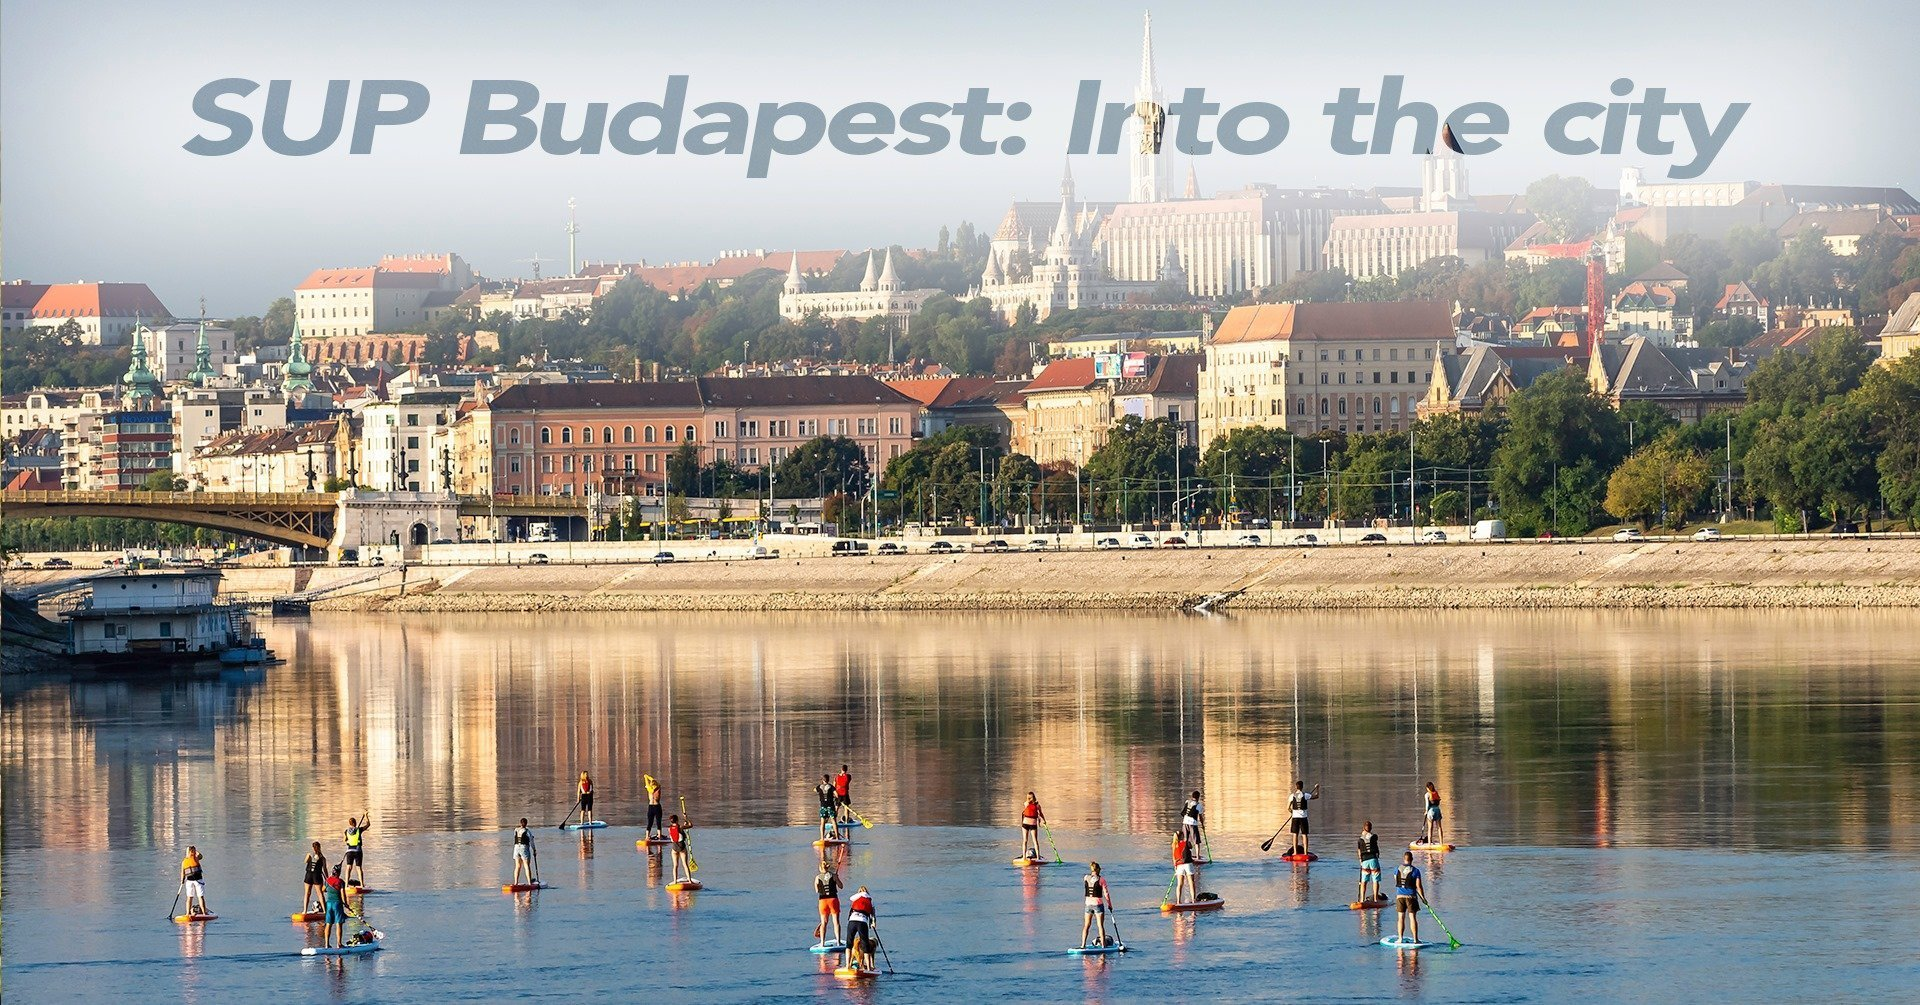 Sunset SUP tour in Budapest